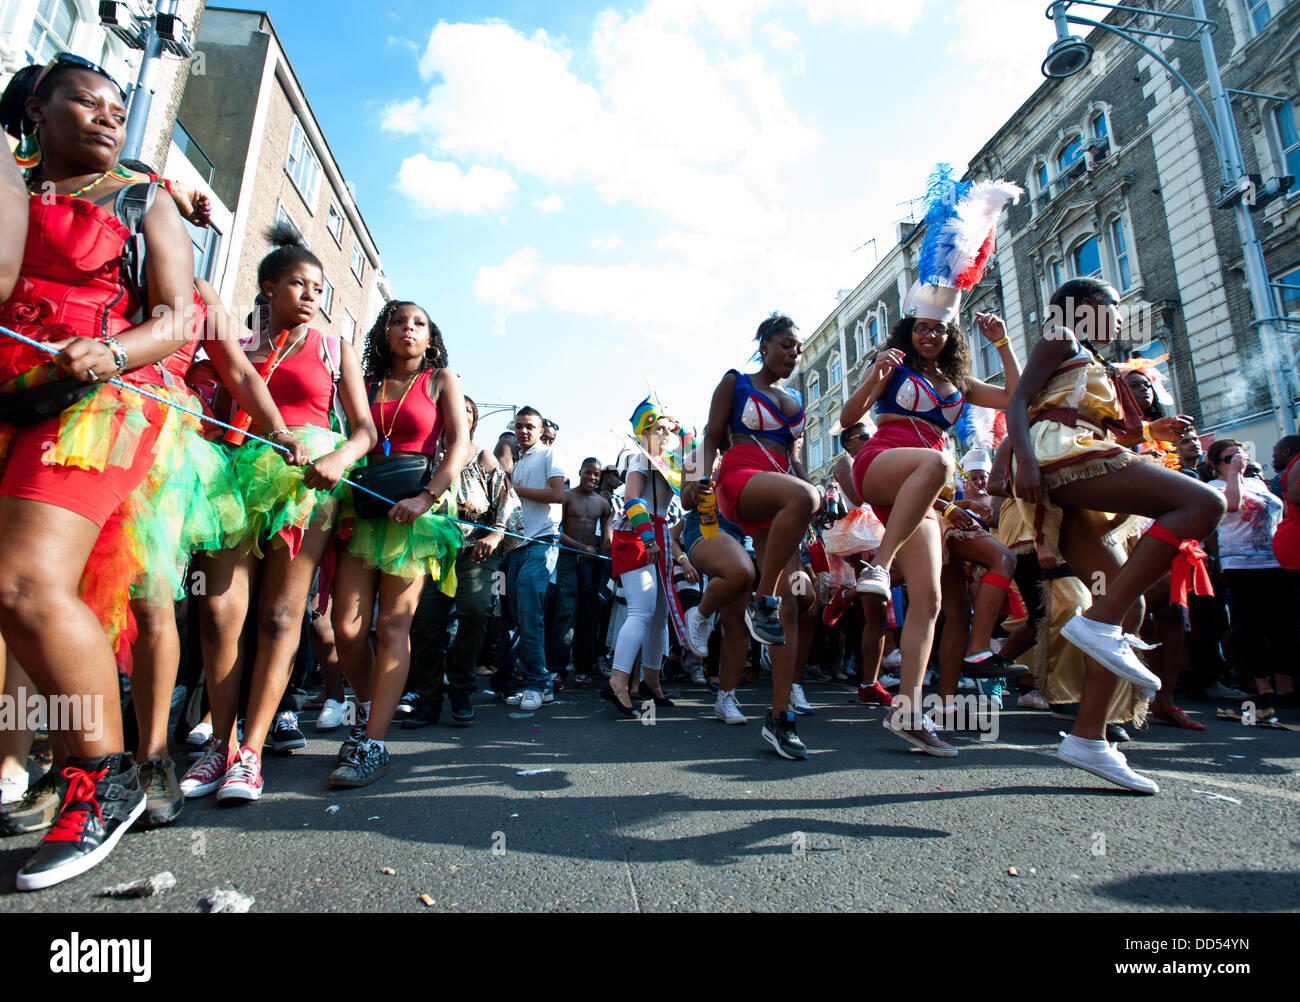 London, UK - 26 August 2013: revellers dance during the annual parade at the Notting Hill Carnival. Stock Photo